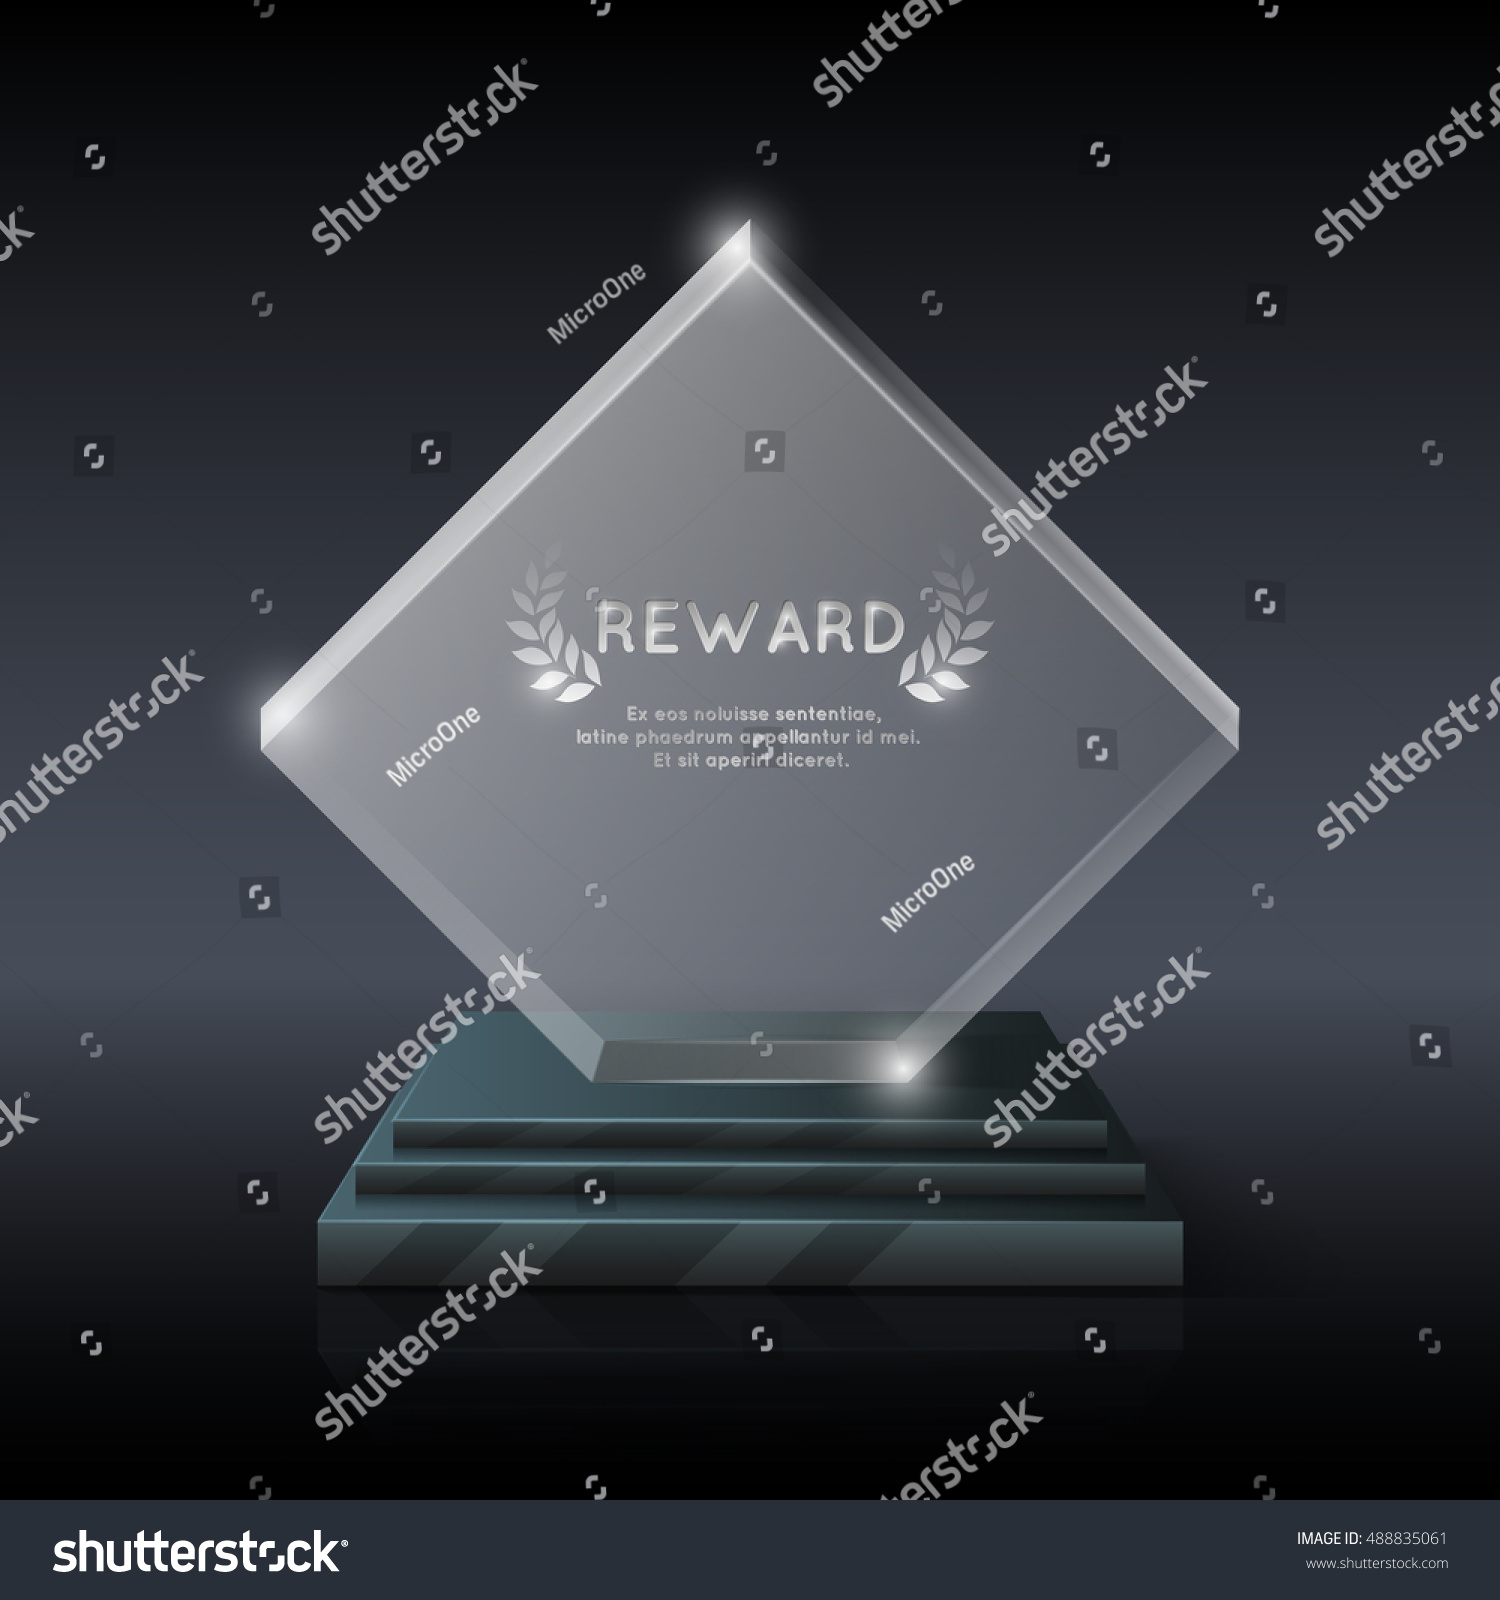 Vector realistic crystal glass trophy award for winner and champion illustration